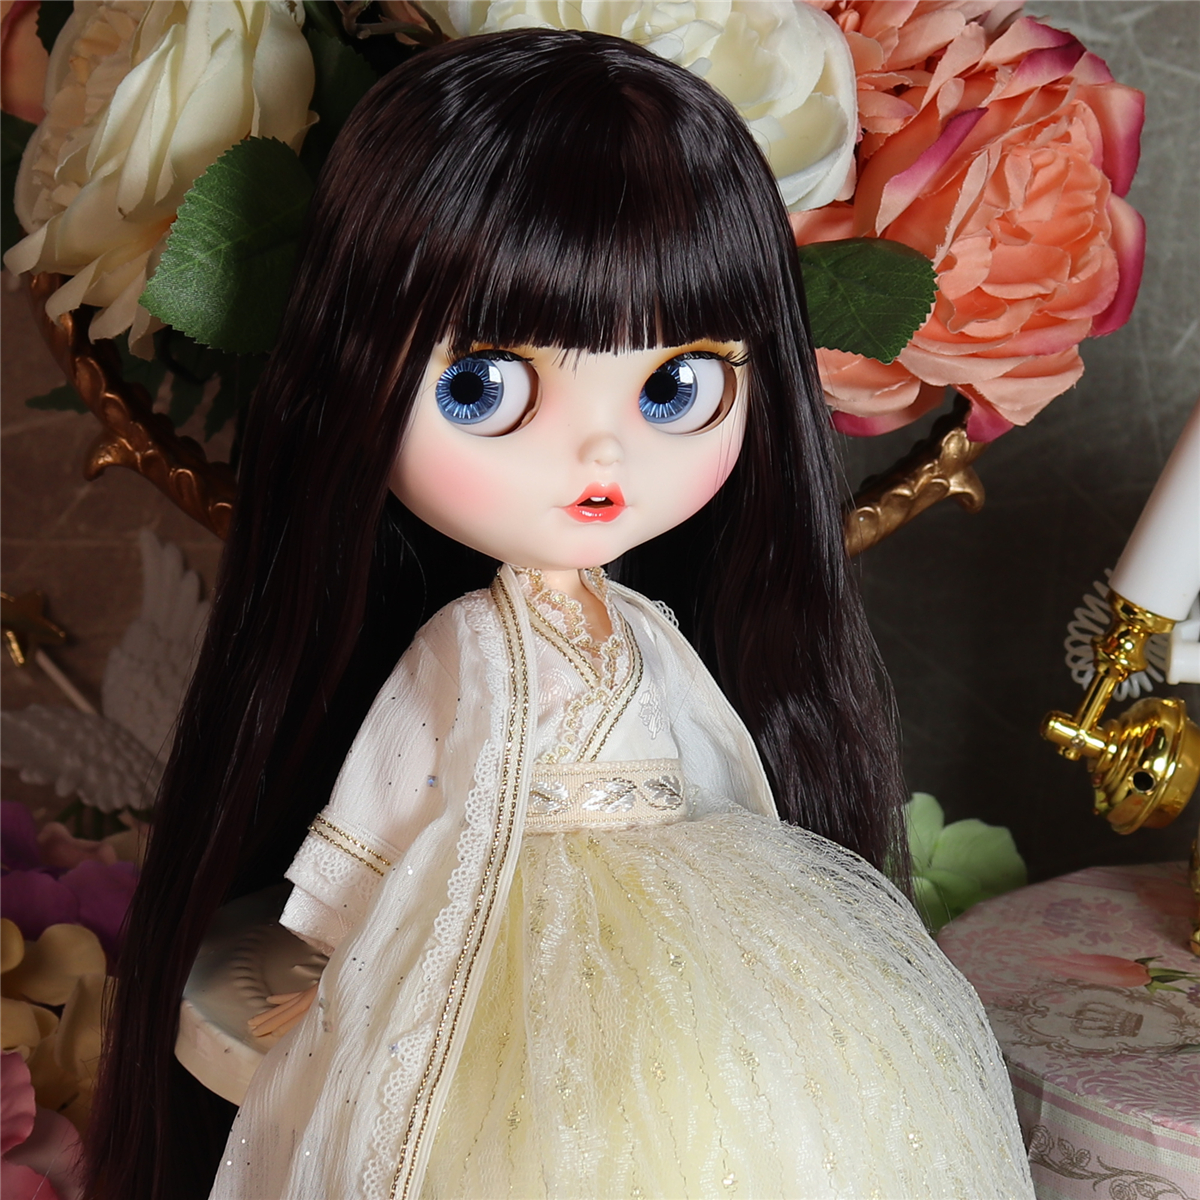 Jacey – Premium Custom Blythe Doll with Smiling Face 3